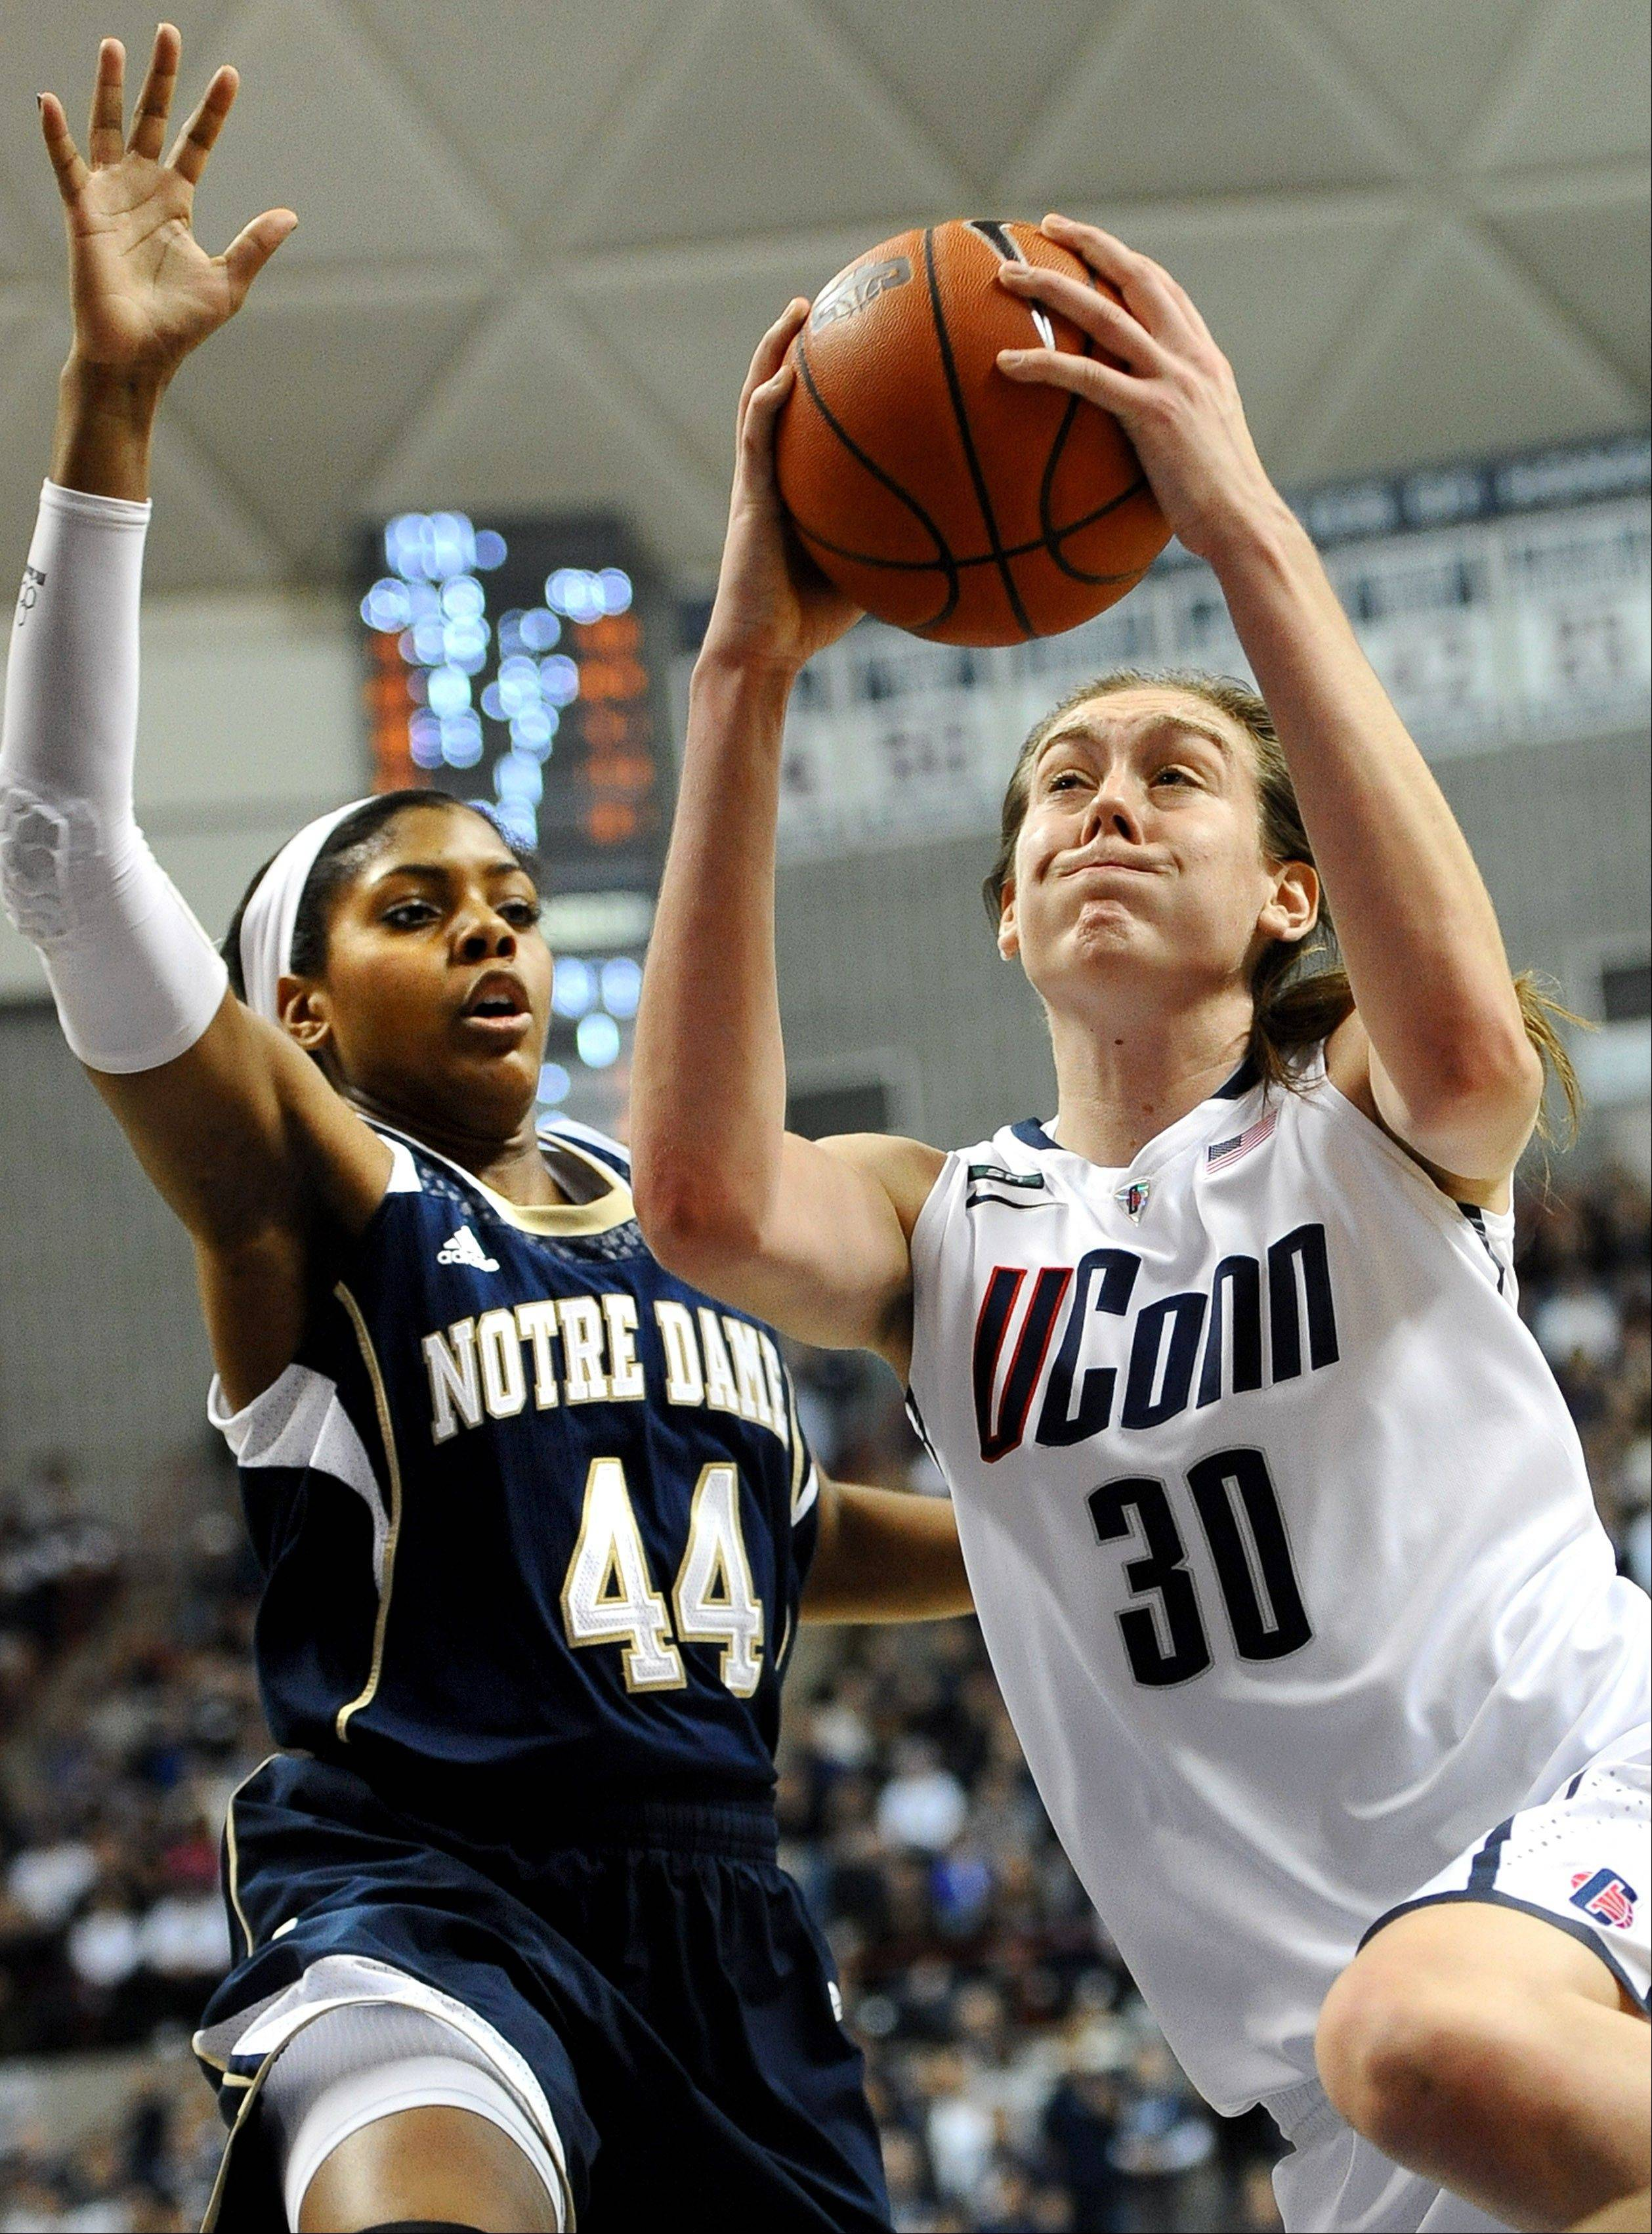 Connecticut's Breanna Stewart (30) drives to the basket while guarded by Notre Dame's Ariel Braker during the second half of an NCAA college basketball game in Storrs, Conn., Saturday, Jan. 5, 2013. Notre Dame won 73-72.